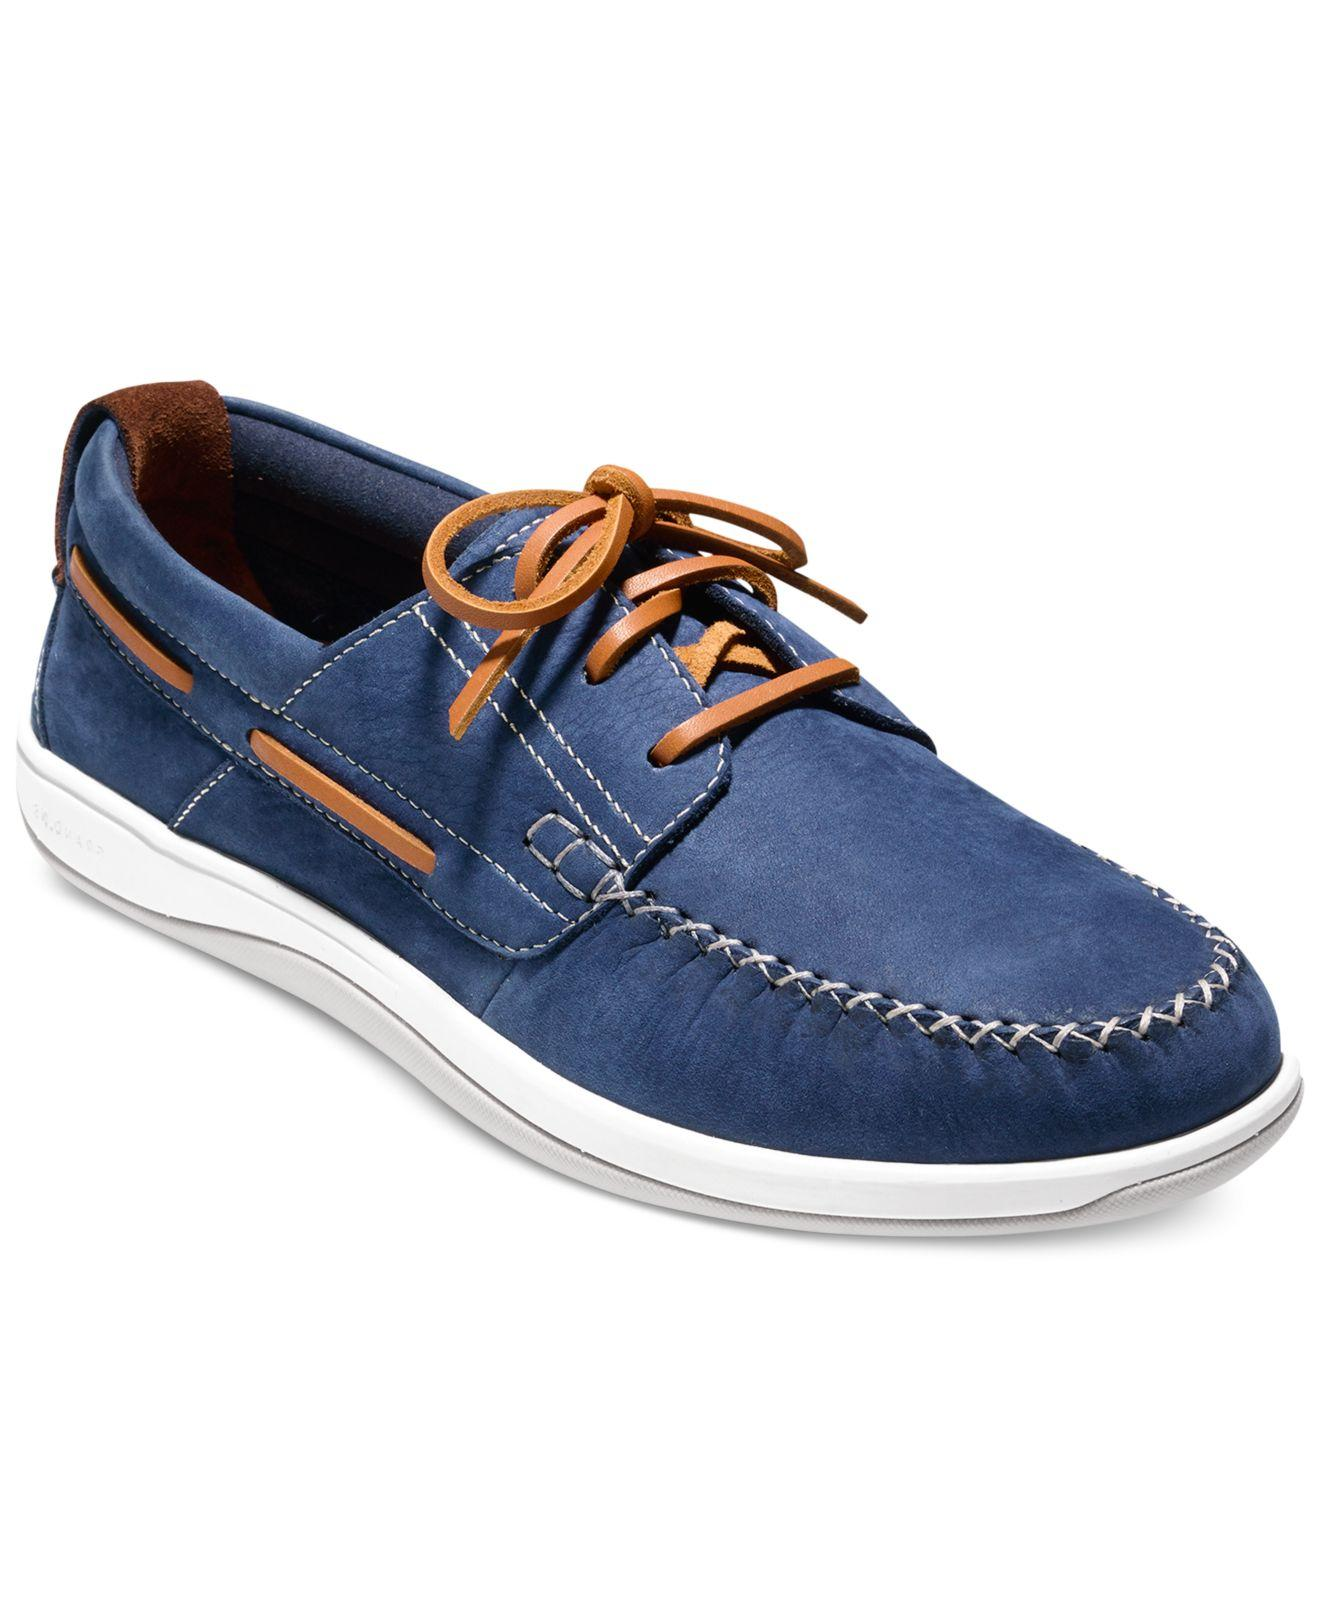 Dc Shoes Loafers Mens